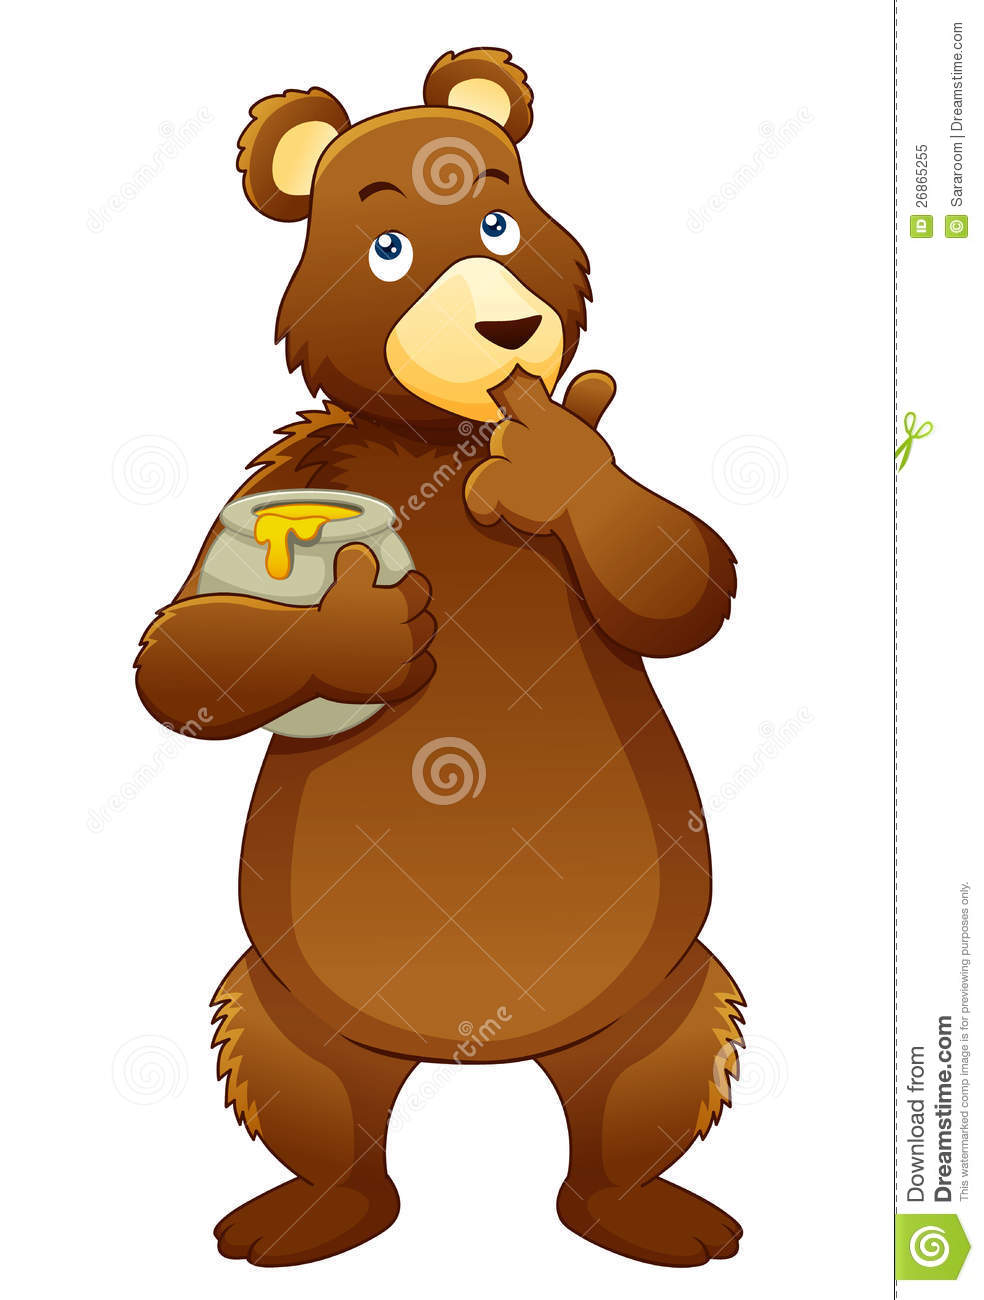 Bear Eating Honey Royalty Free Stock Photo - Image: 26865255